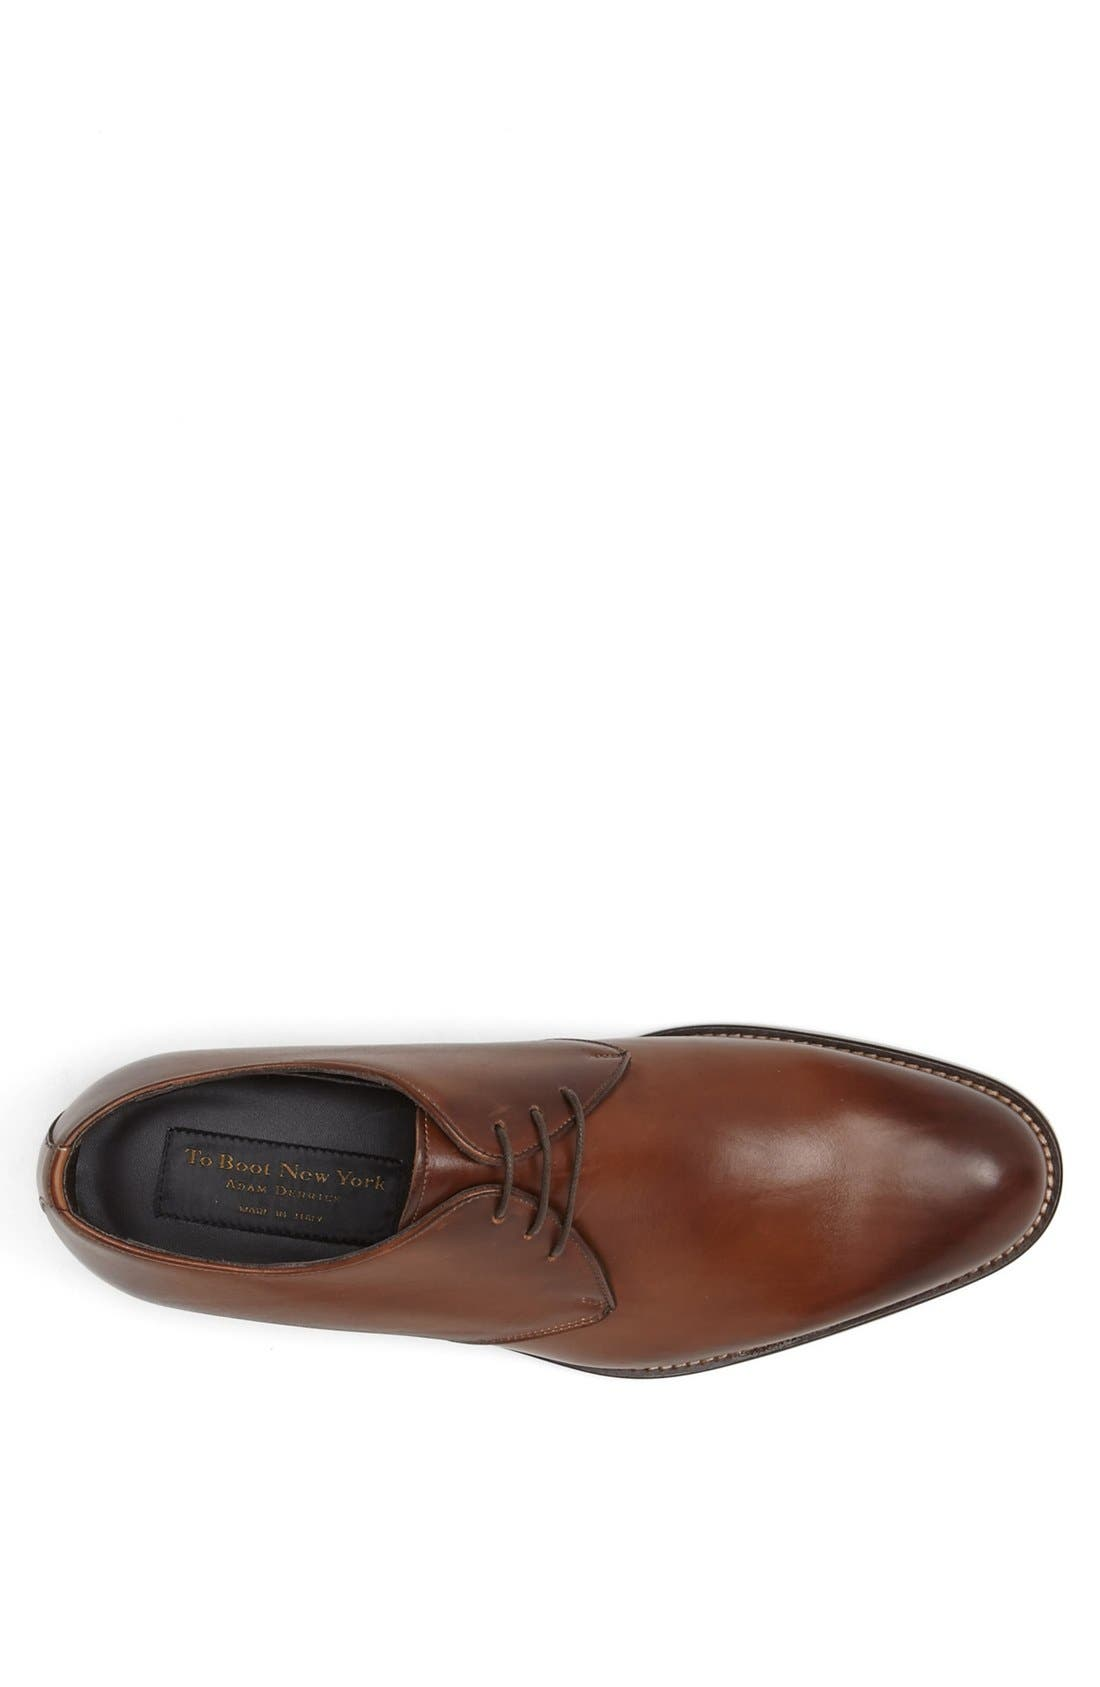 Alternate Image 3  - To Boot New York 'Winston' Oxford